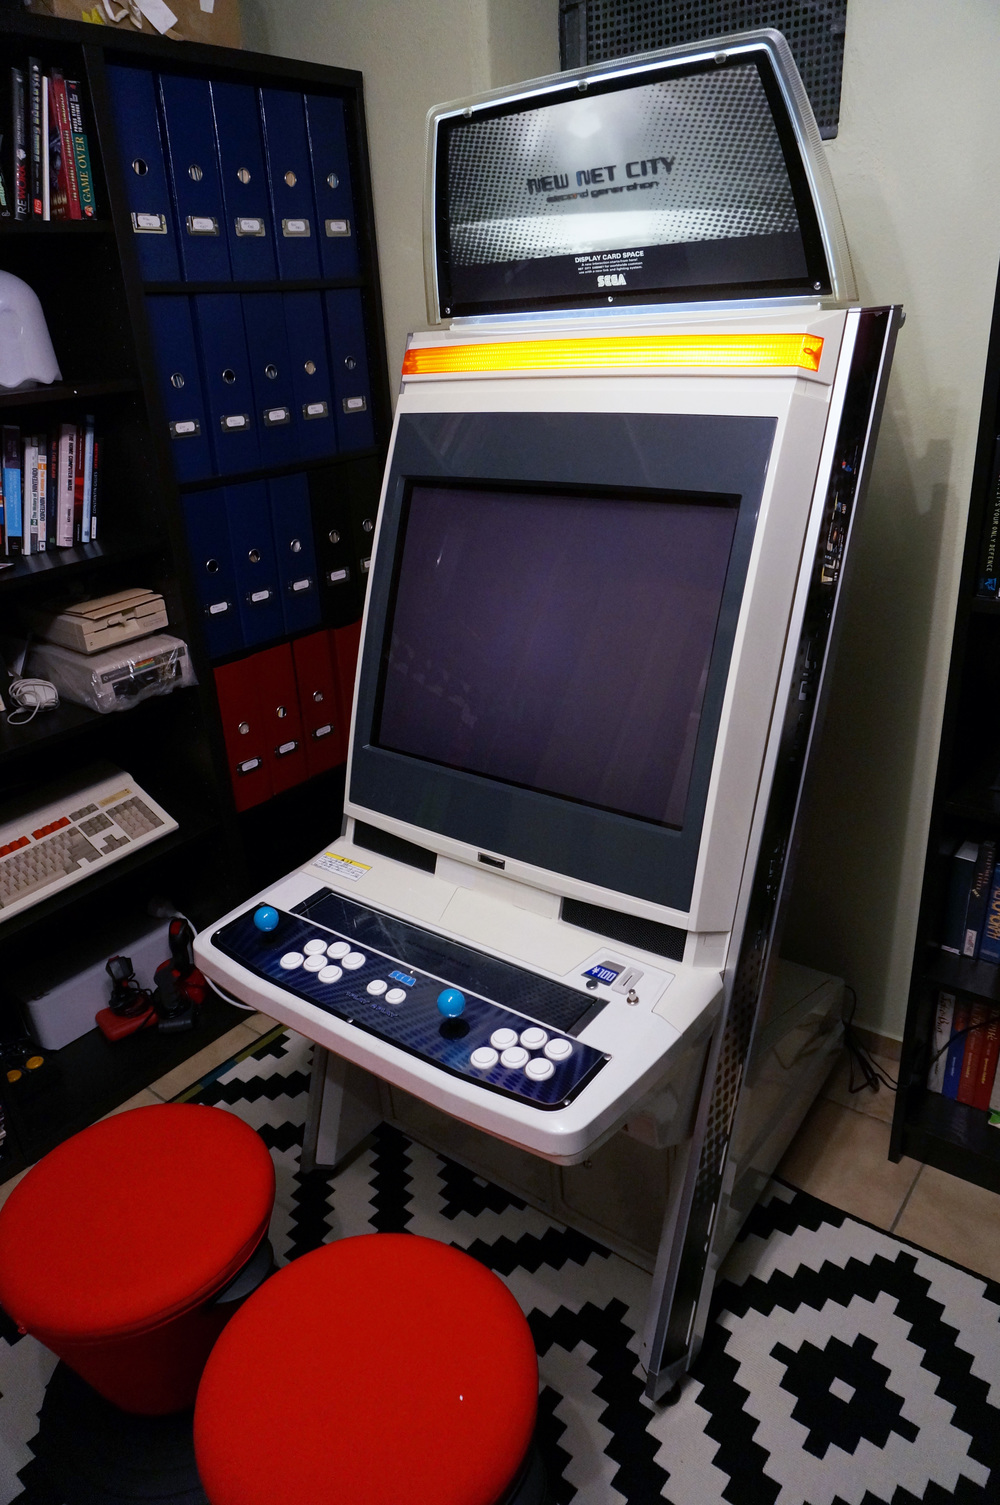 Sega New Net City Cabinet